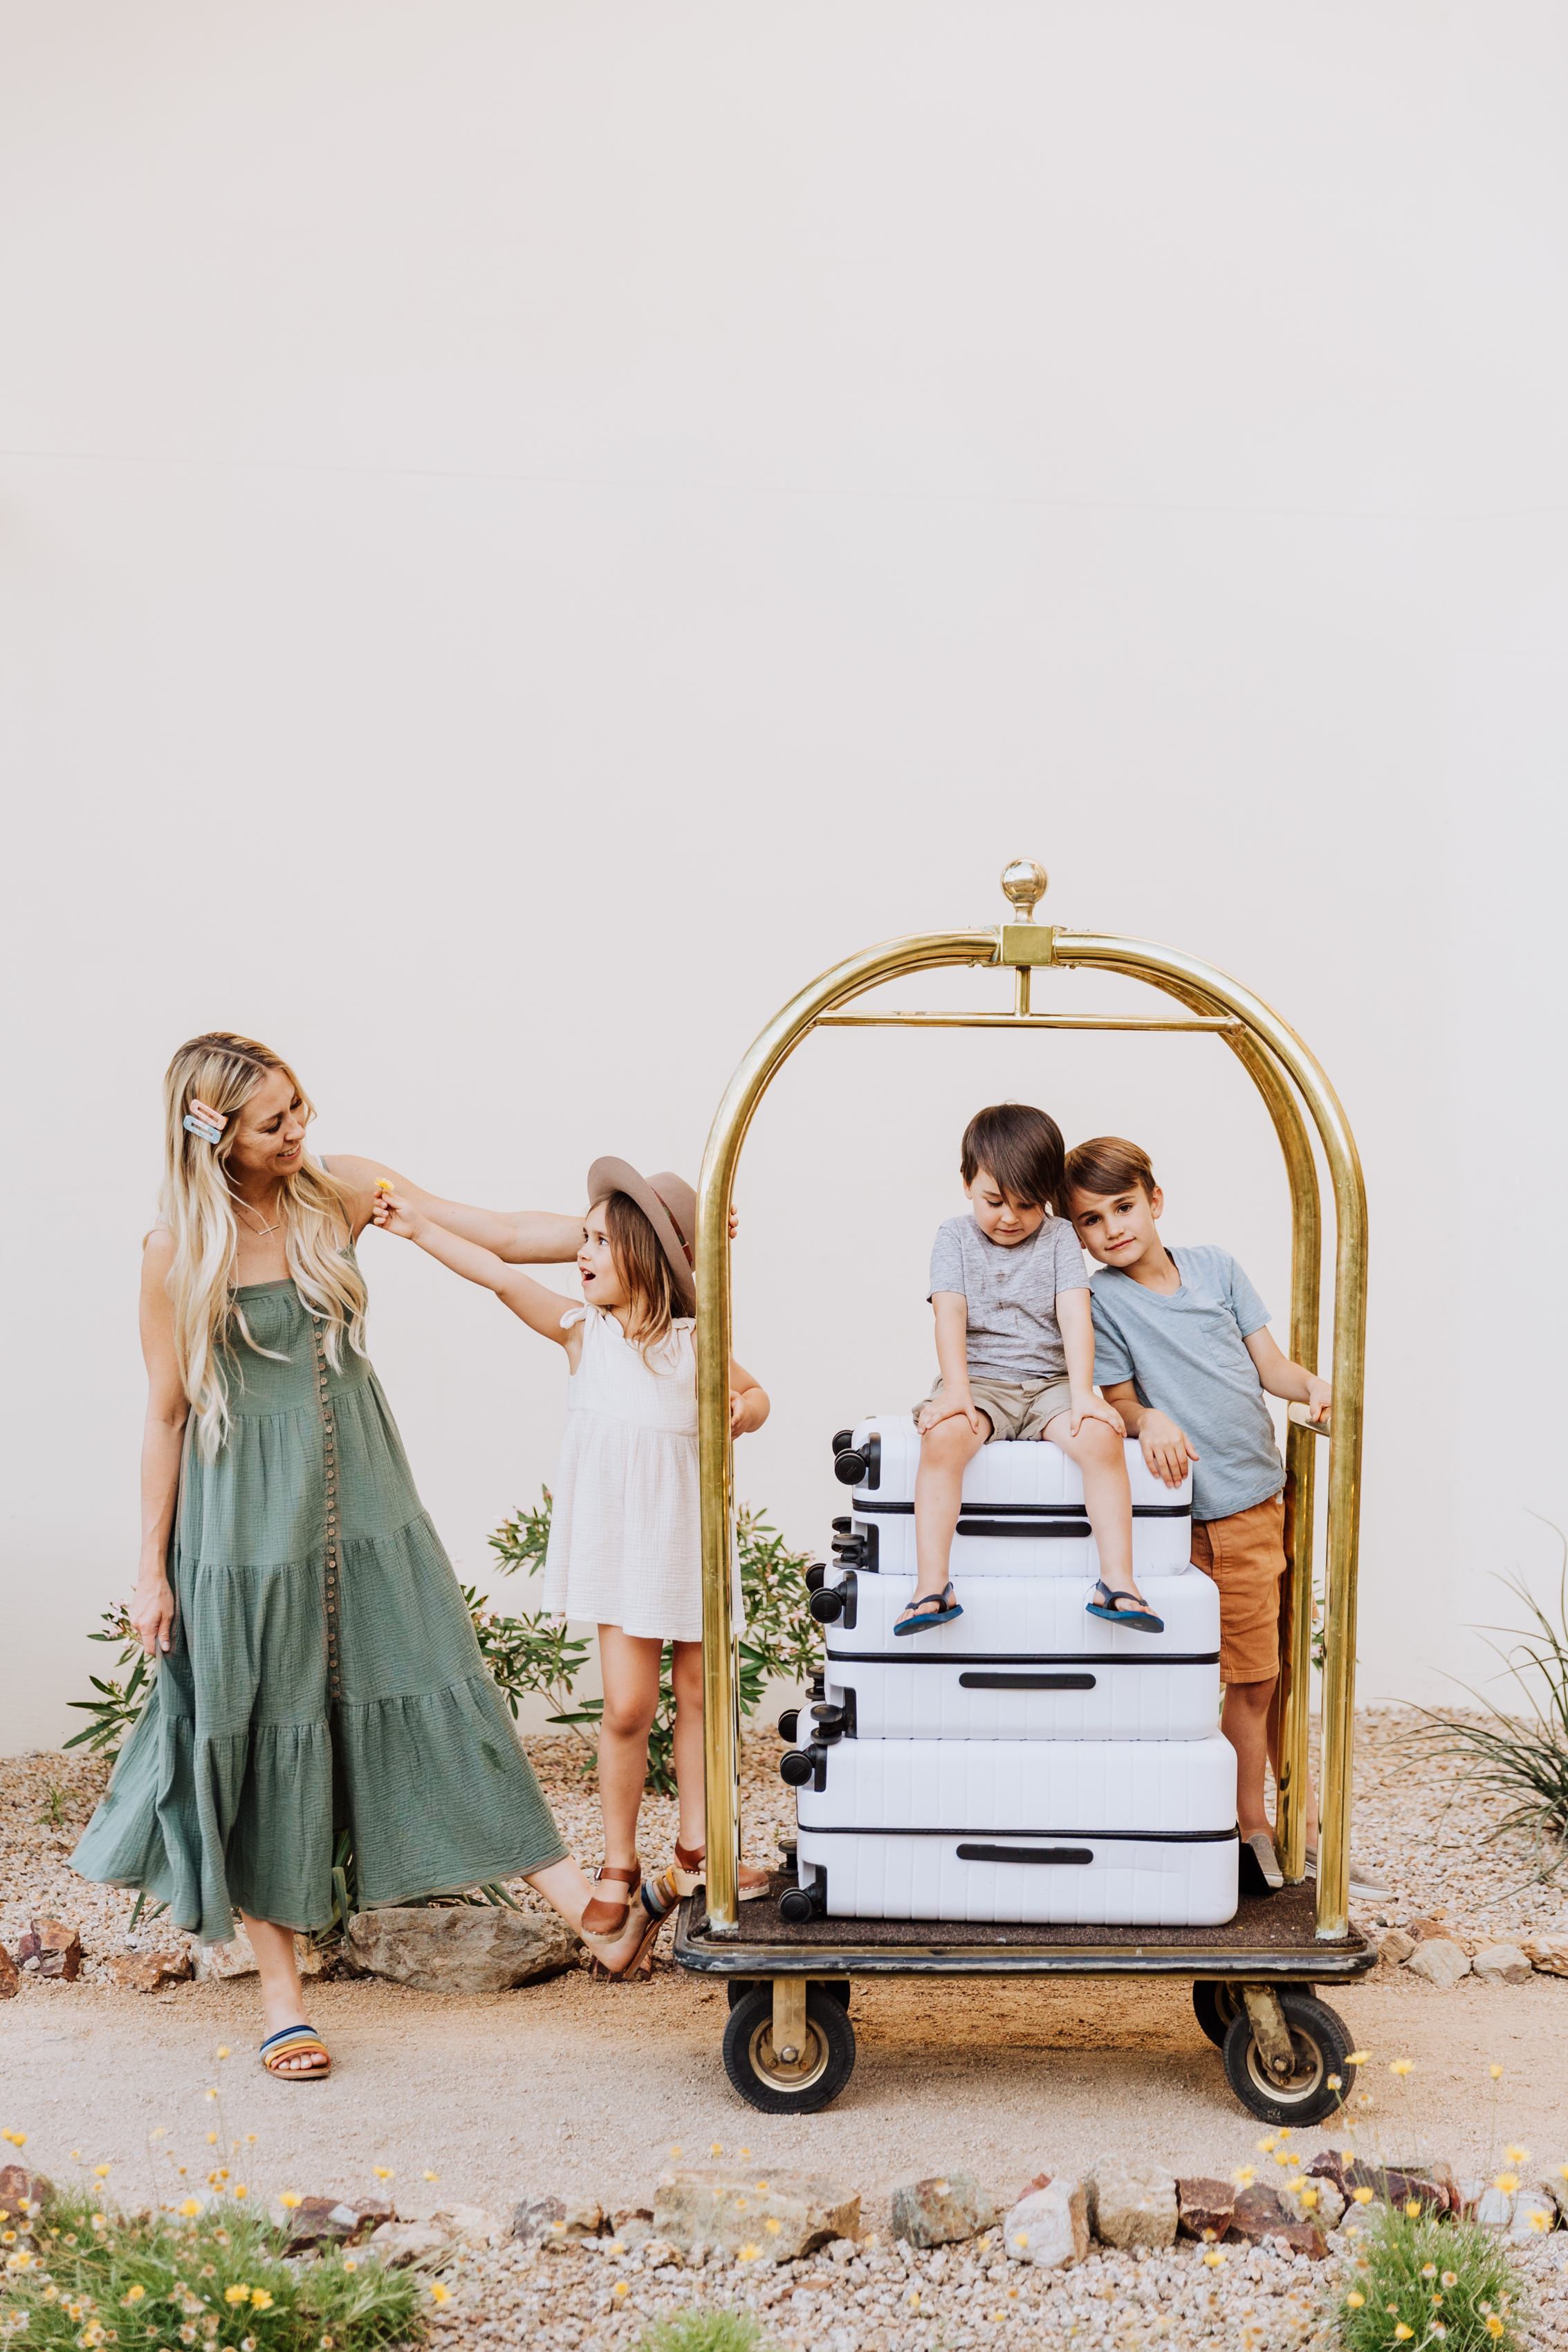 summer travel ready with suitcases and a hotel bellhop